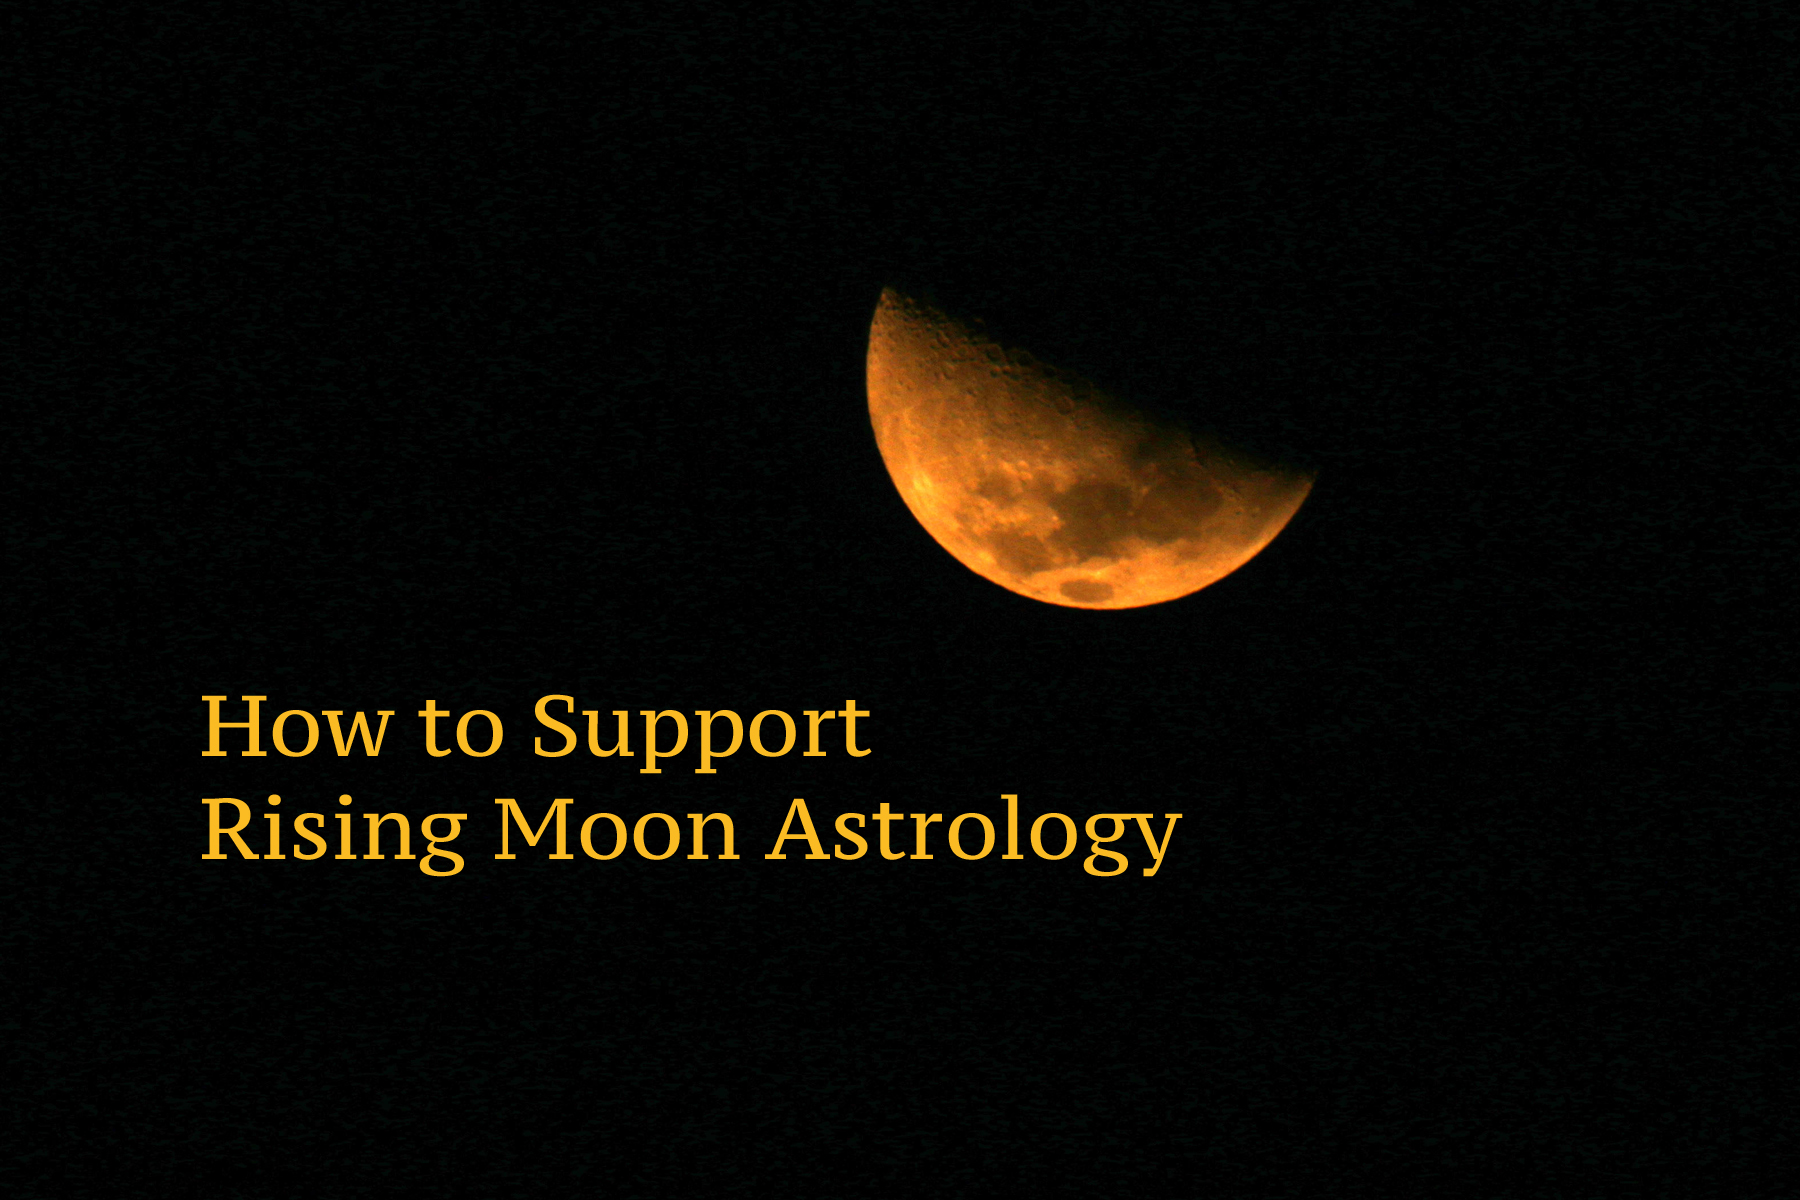 Supporting Rising Moon Astrology